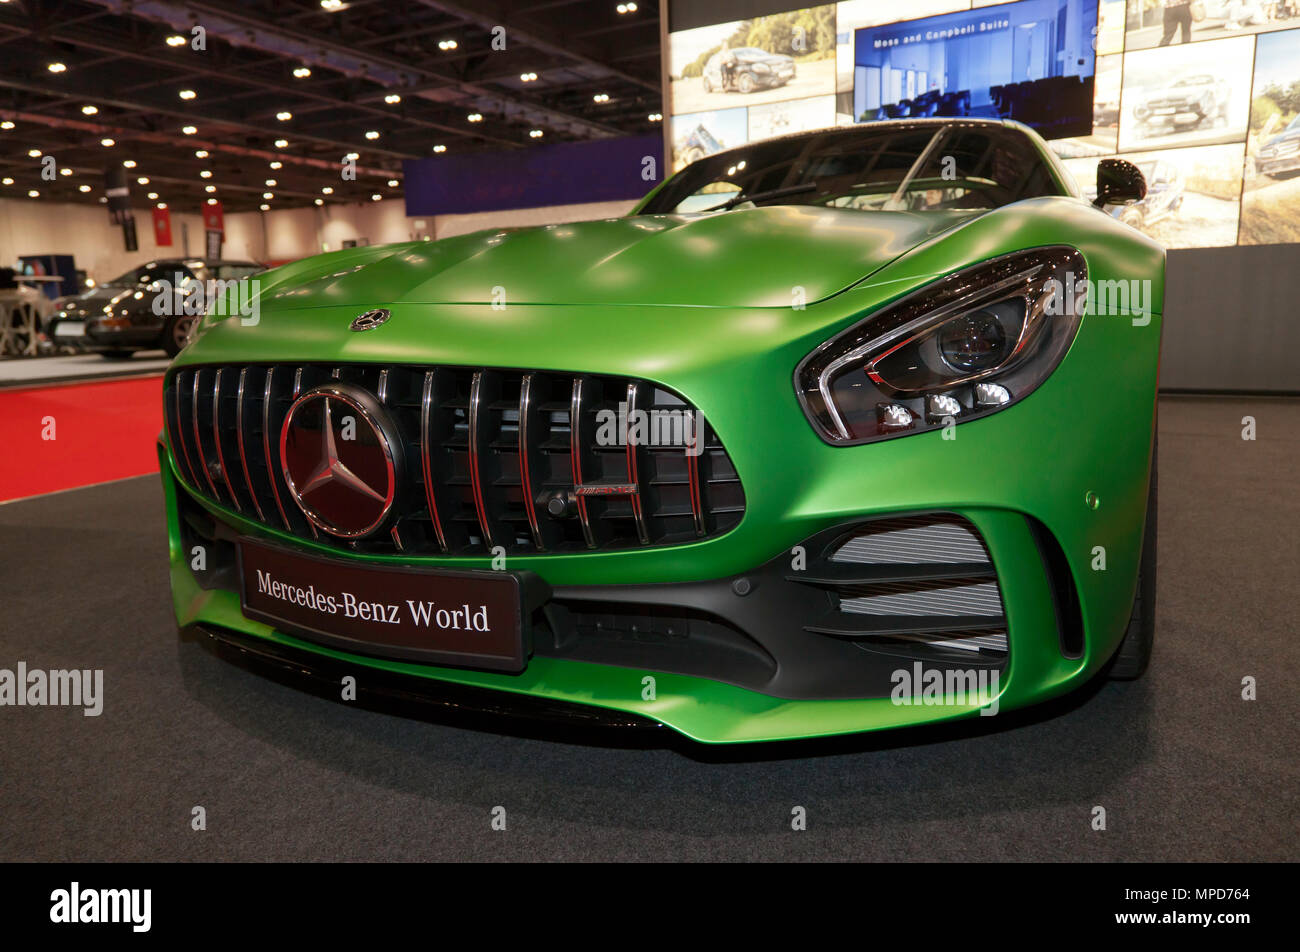 Front view of a Mercedes-AMG GT R  on display at the  Mercedes-Benz World Stand, of the 2018 London Motor Show Stock Photo